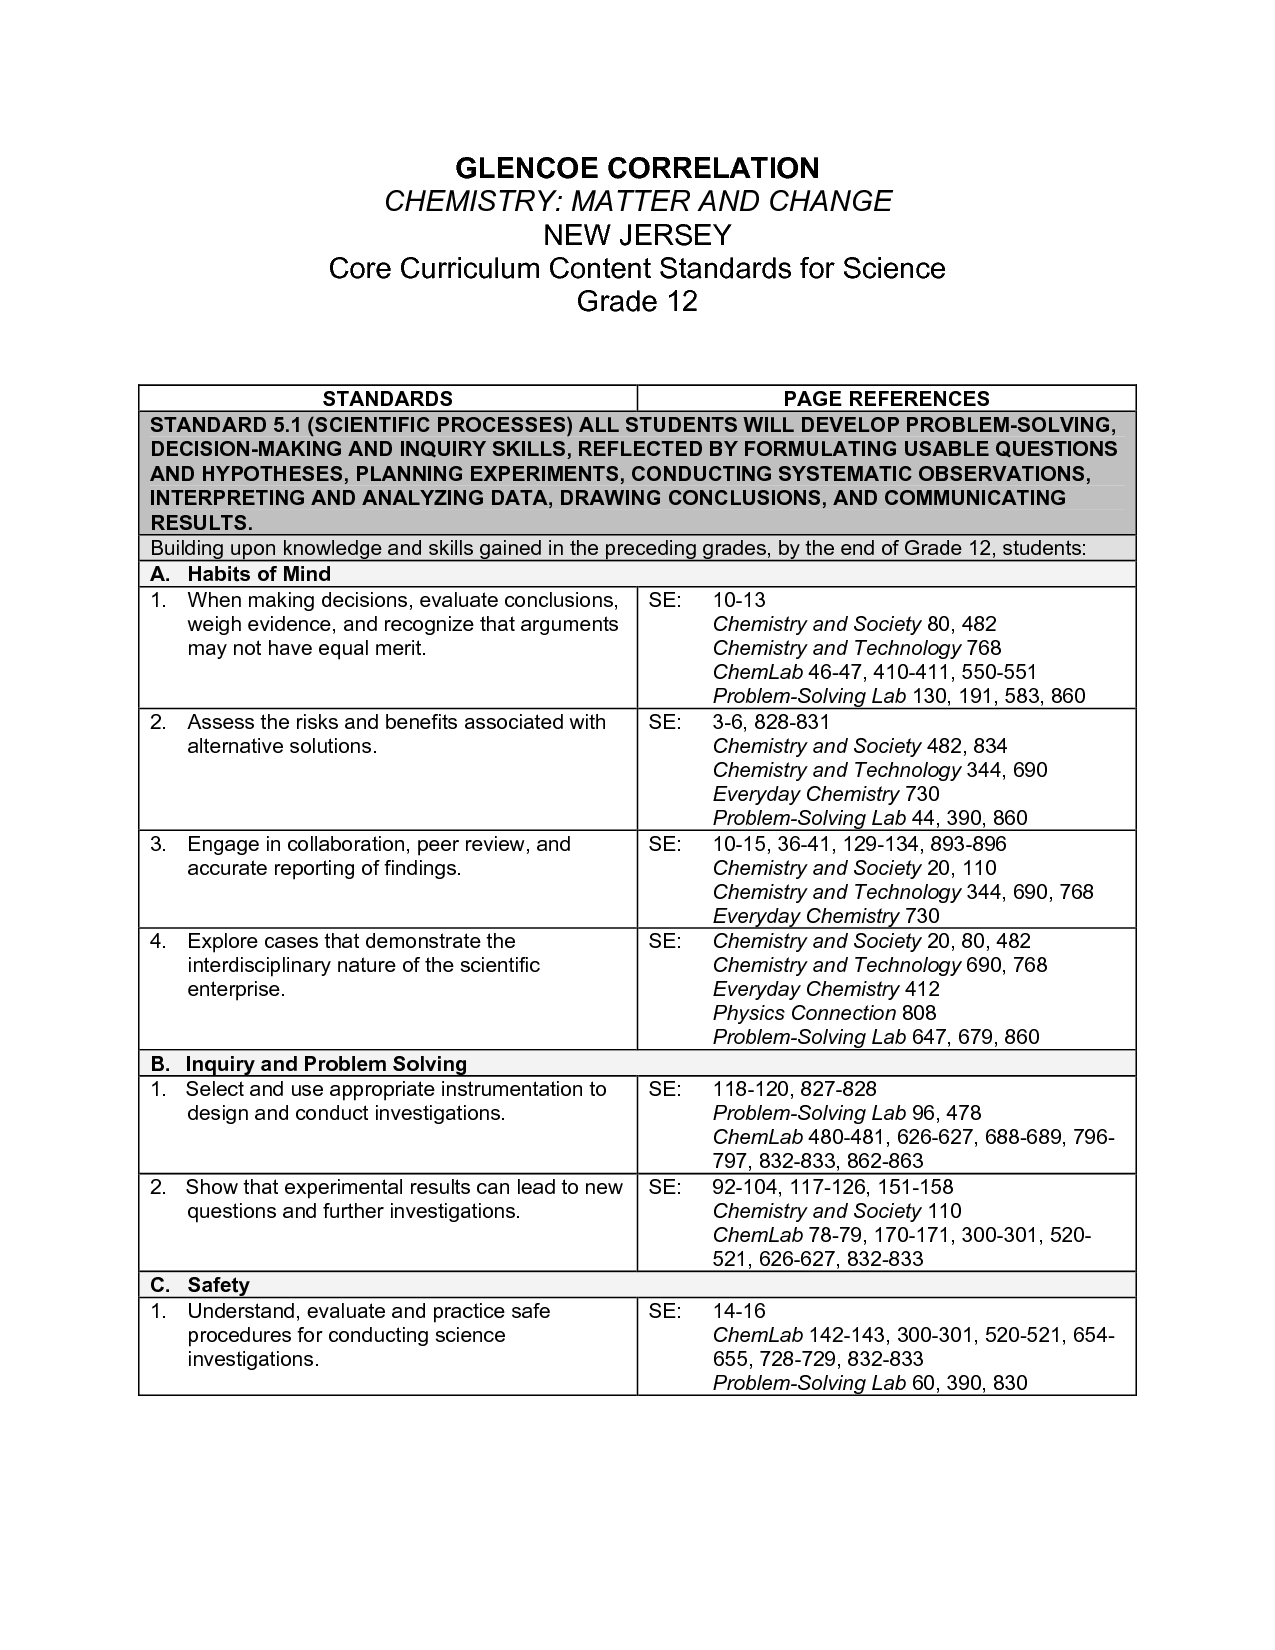 Glencoe Science Worksheets Glencoe Best Free Printable Worksheets